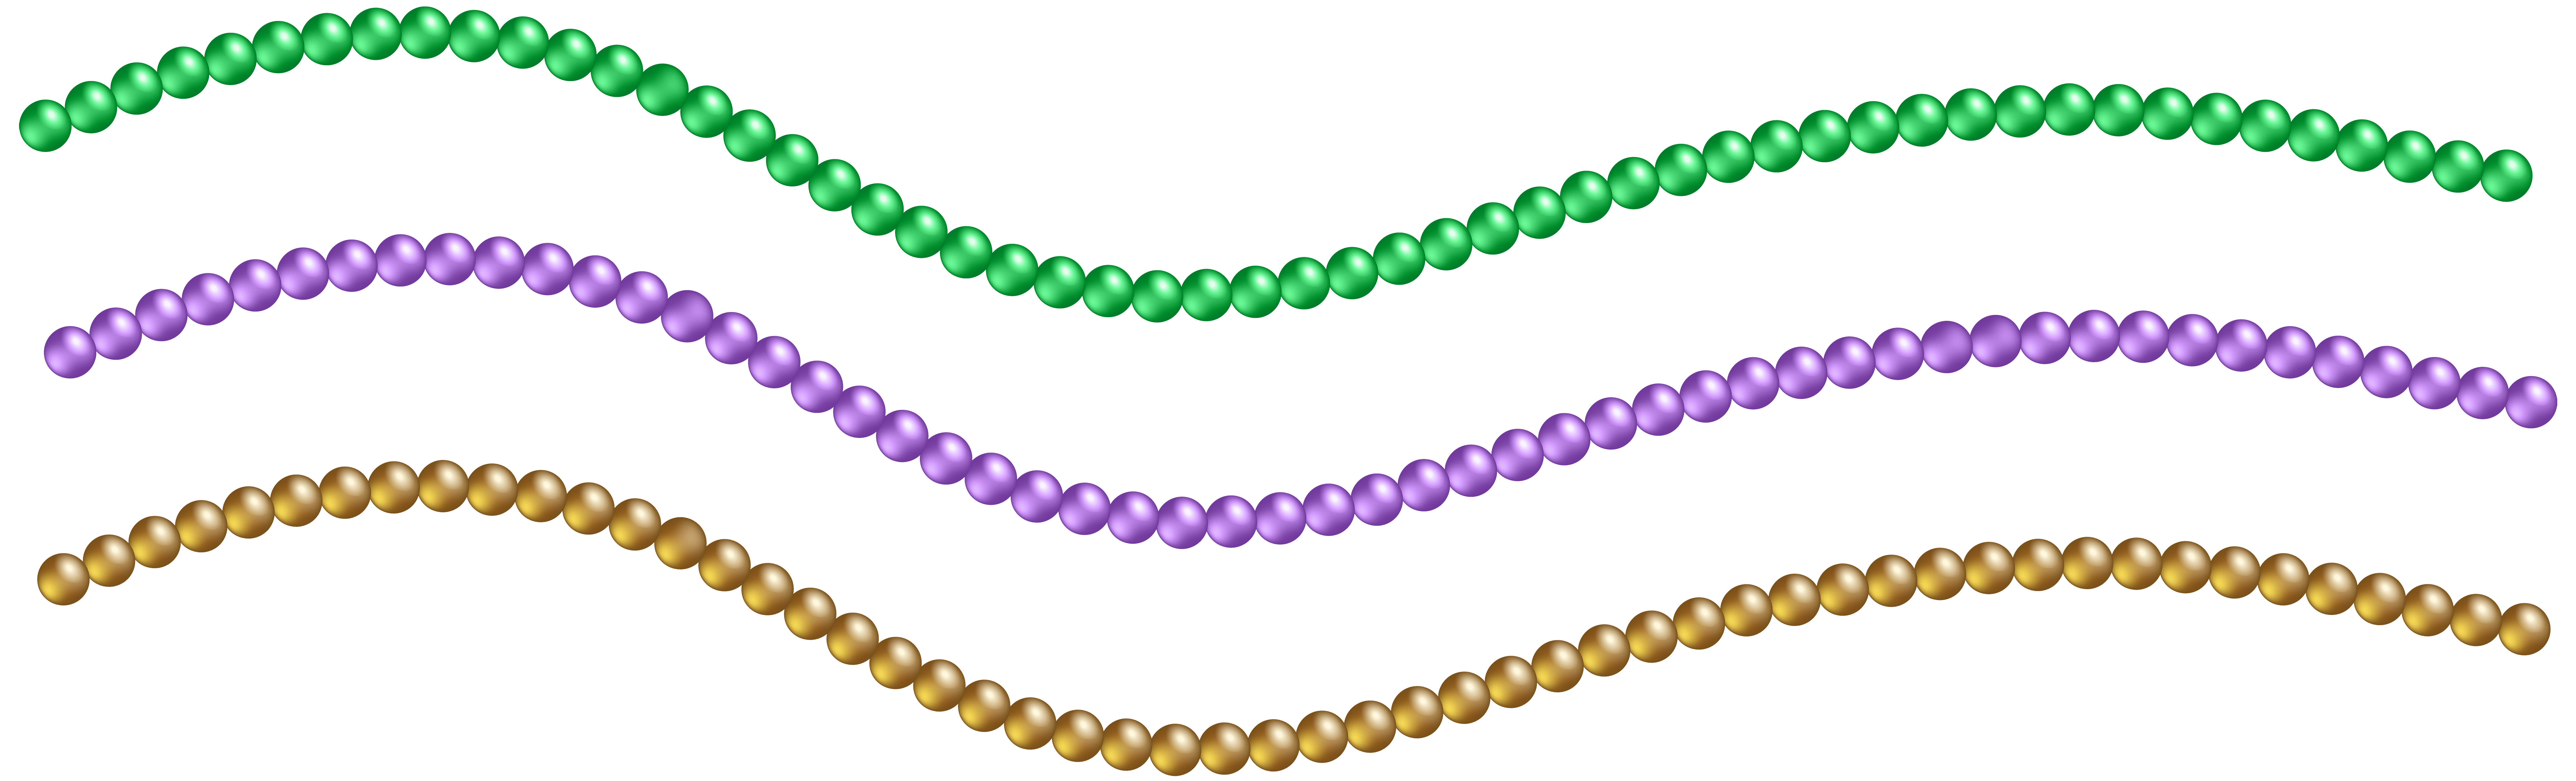 Necklace clipart purple necklace. Beads sweet looking decoration